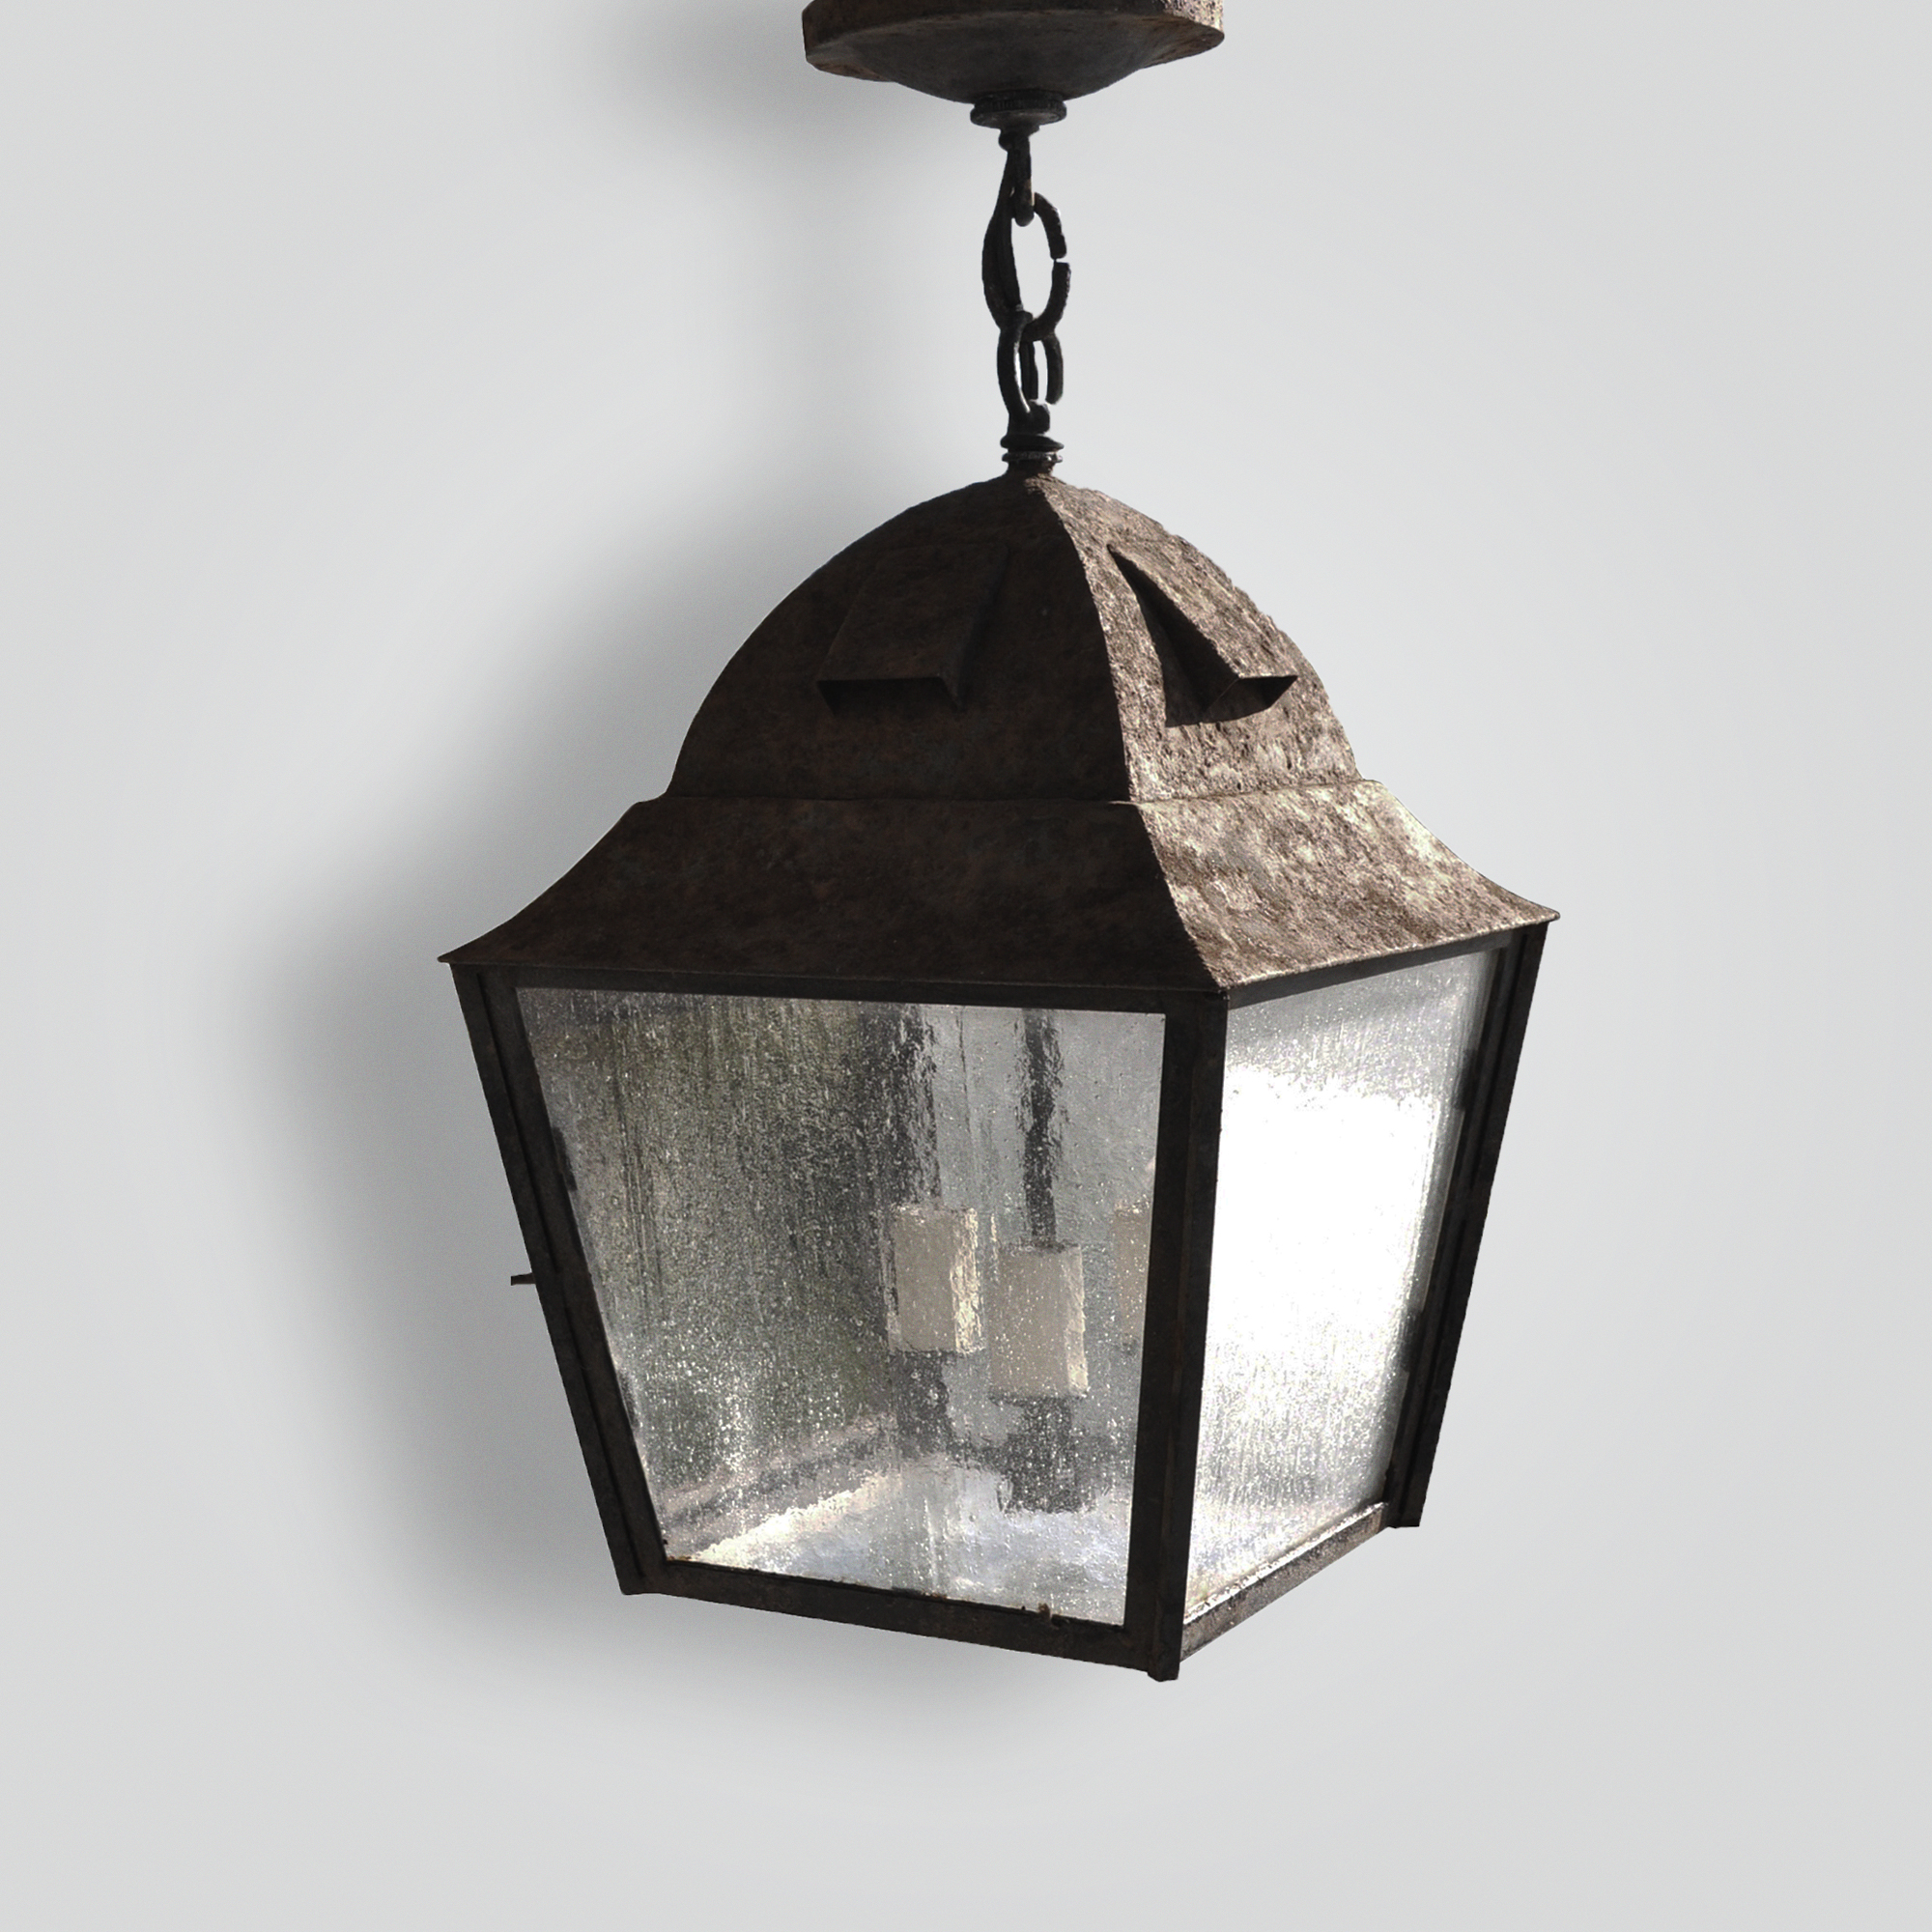 80499-cb2-ir-h-ba Rustic Square Lantern – ADG Lighting Collection